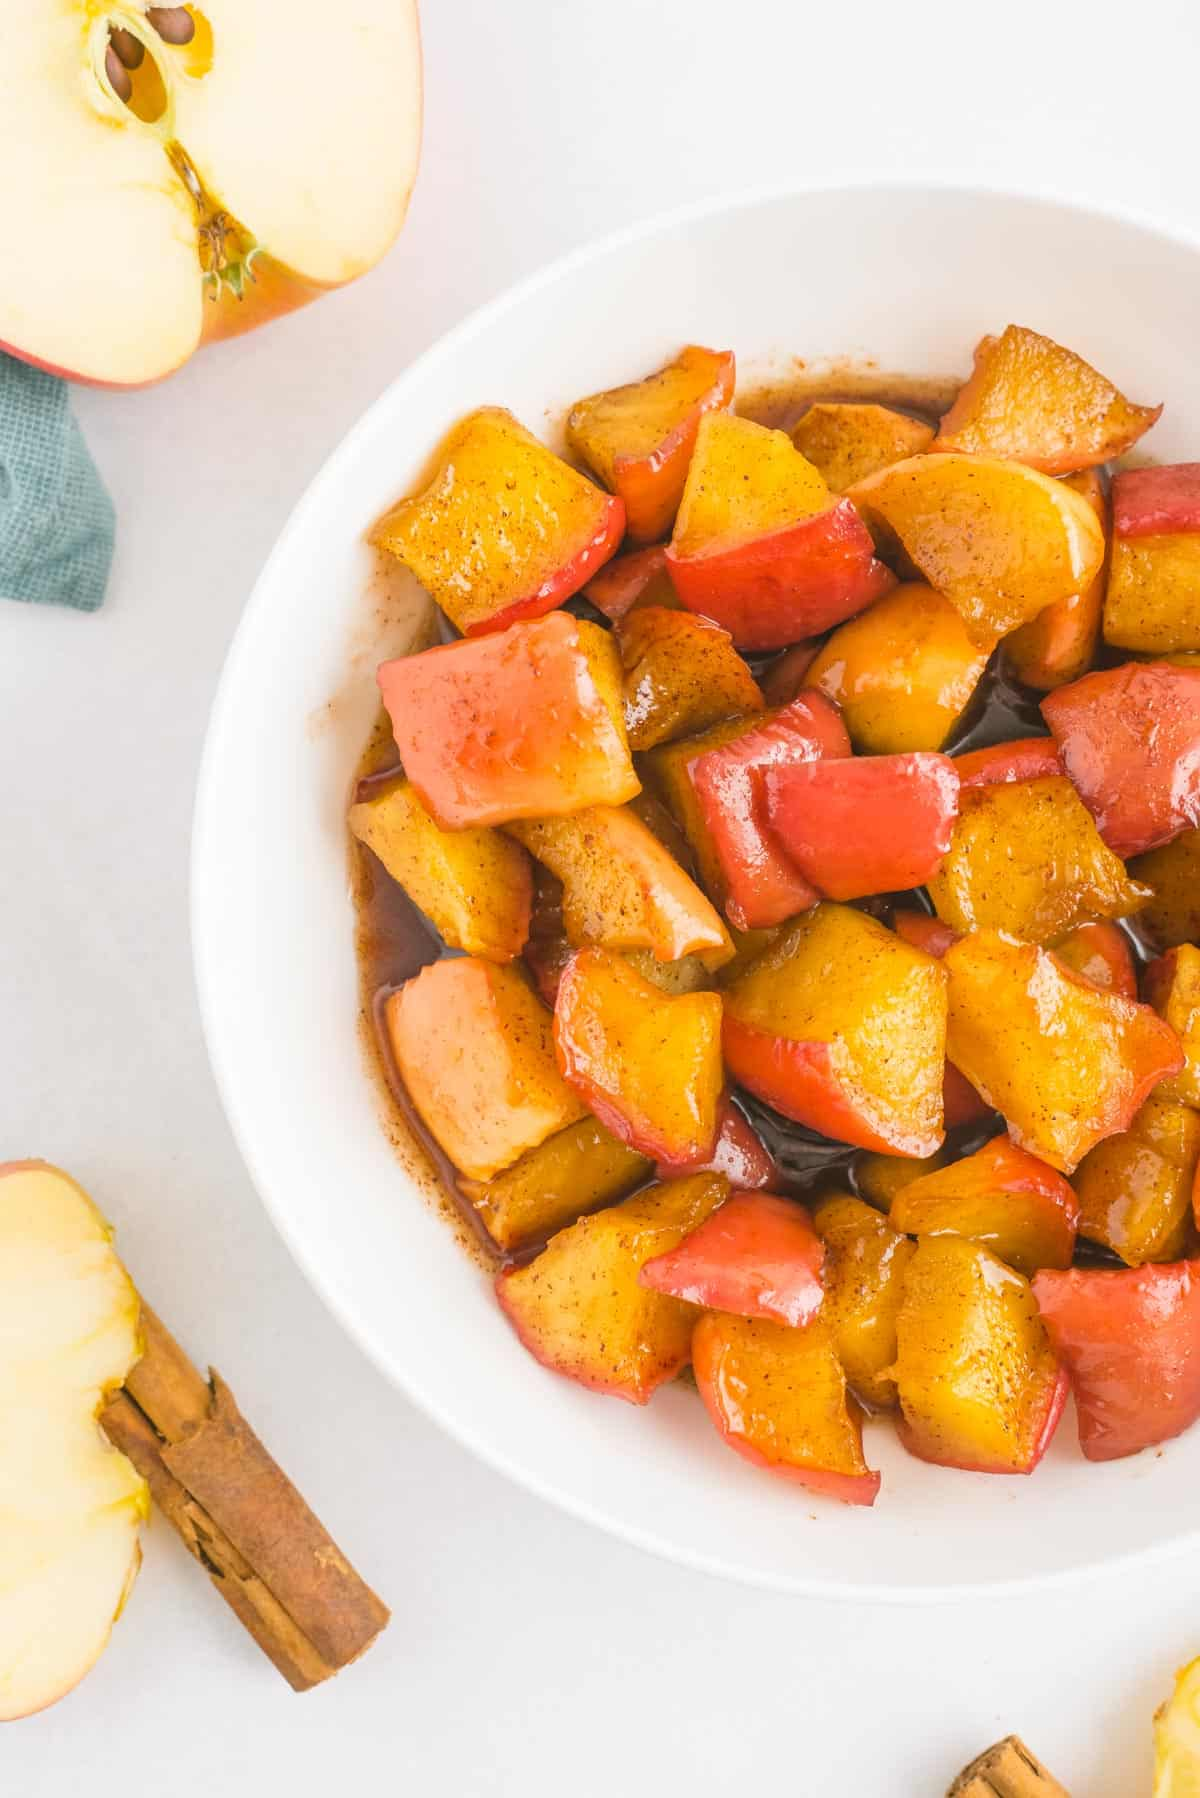 Cinnamon apple compote in a white bowl, with apple halves and cinnamon sticks also in the photo.